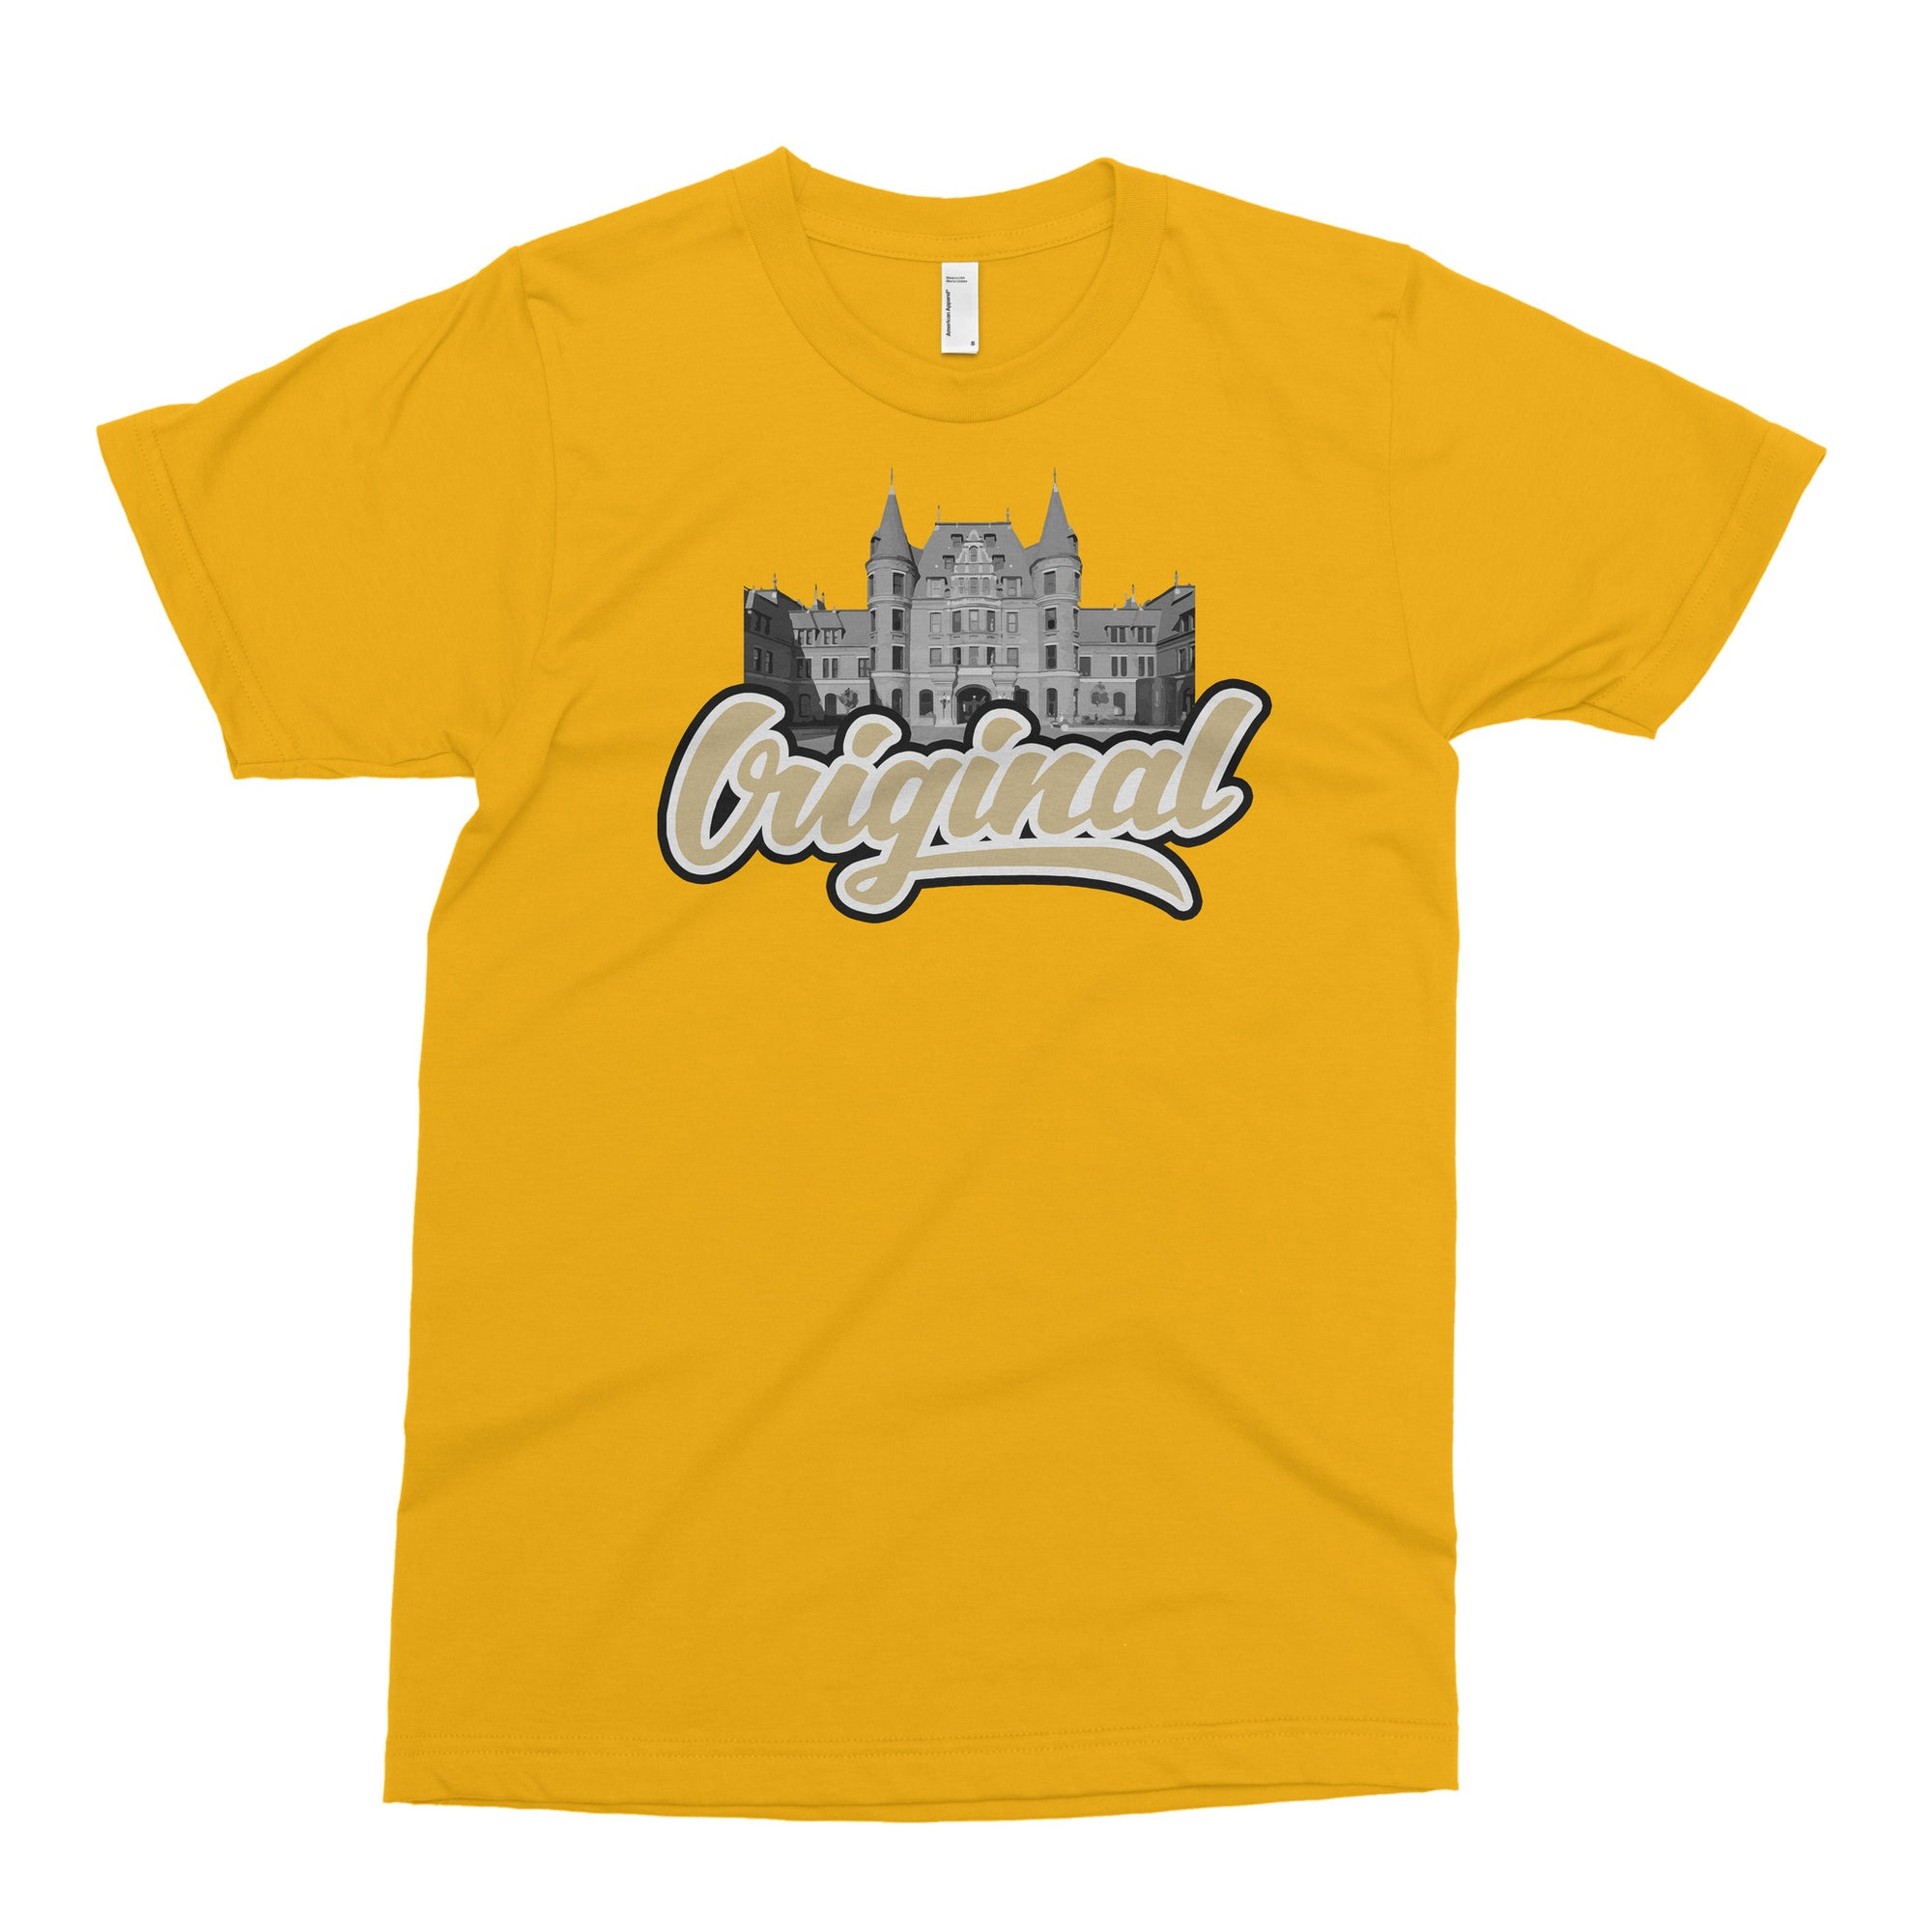 Original Stadium T-SHIRT - Square Boy Clothing